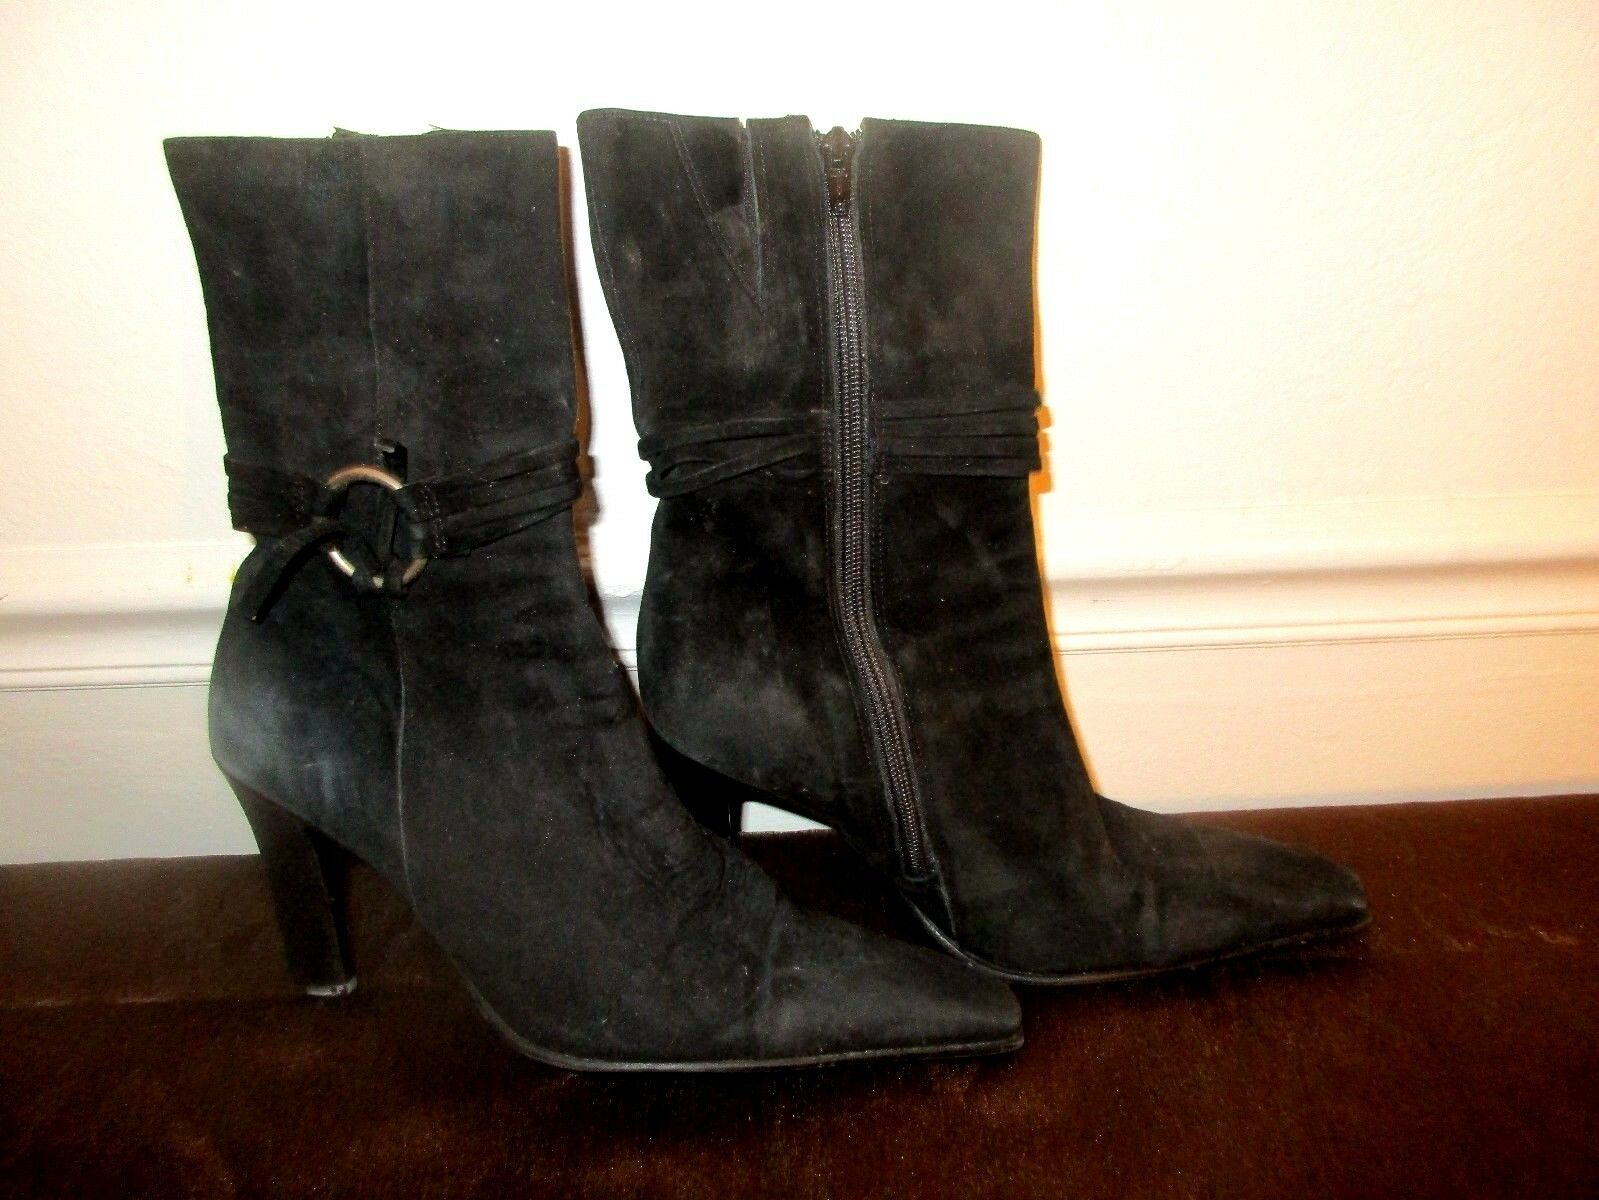 Women's BP Becky-Lea Black Leather upper Boots size 8.5 M*